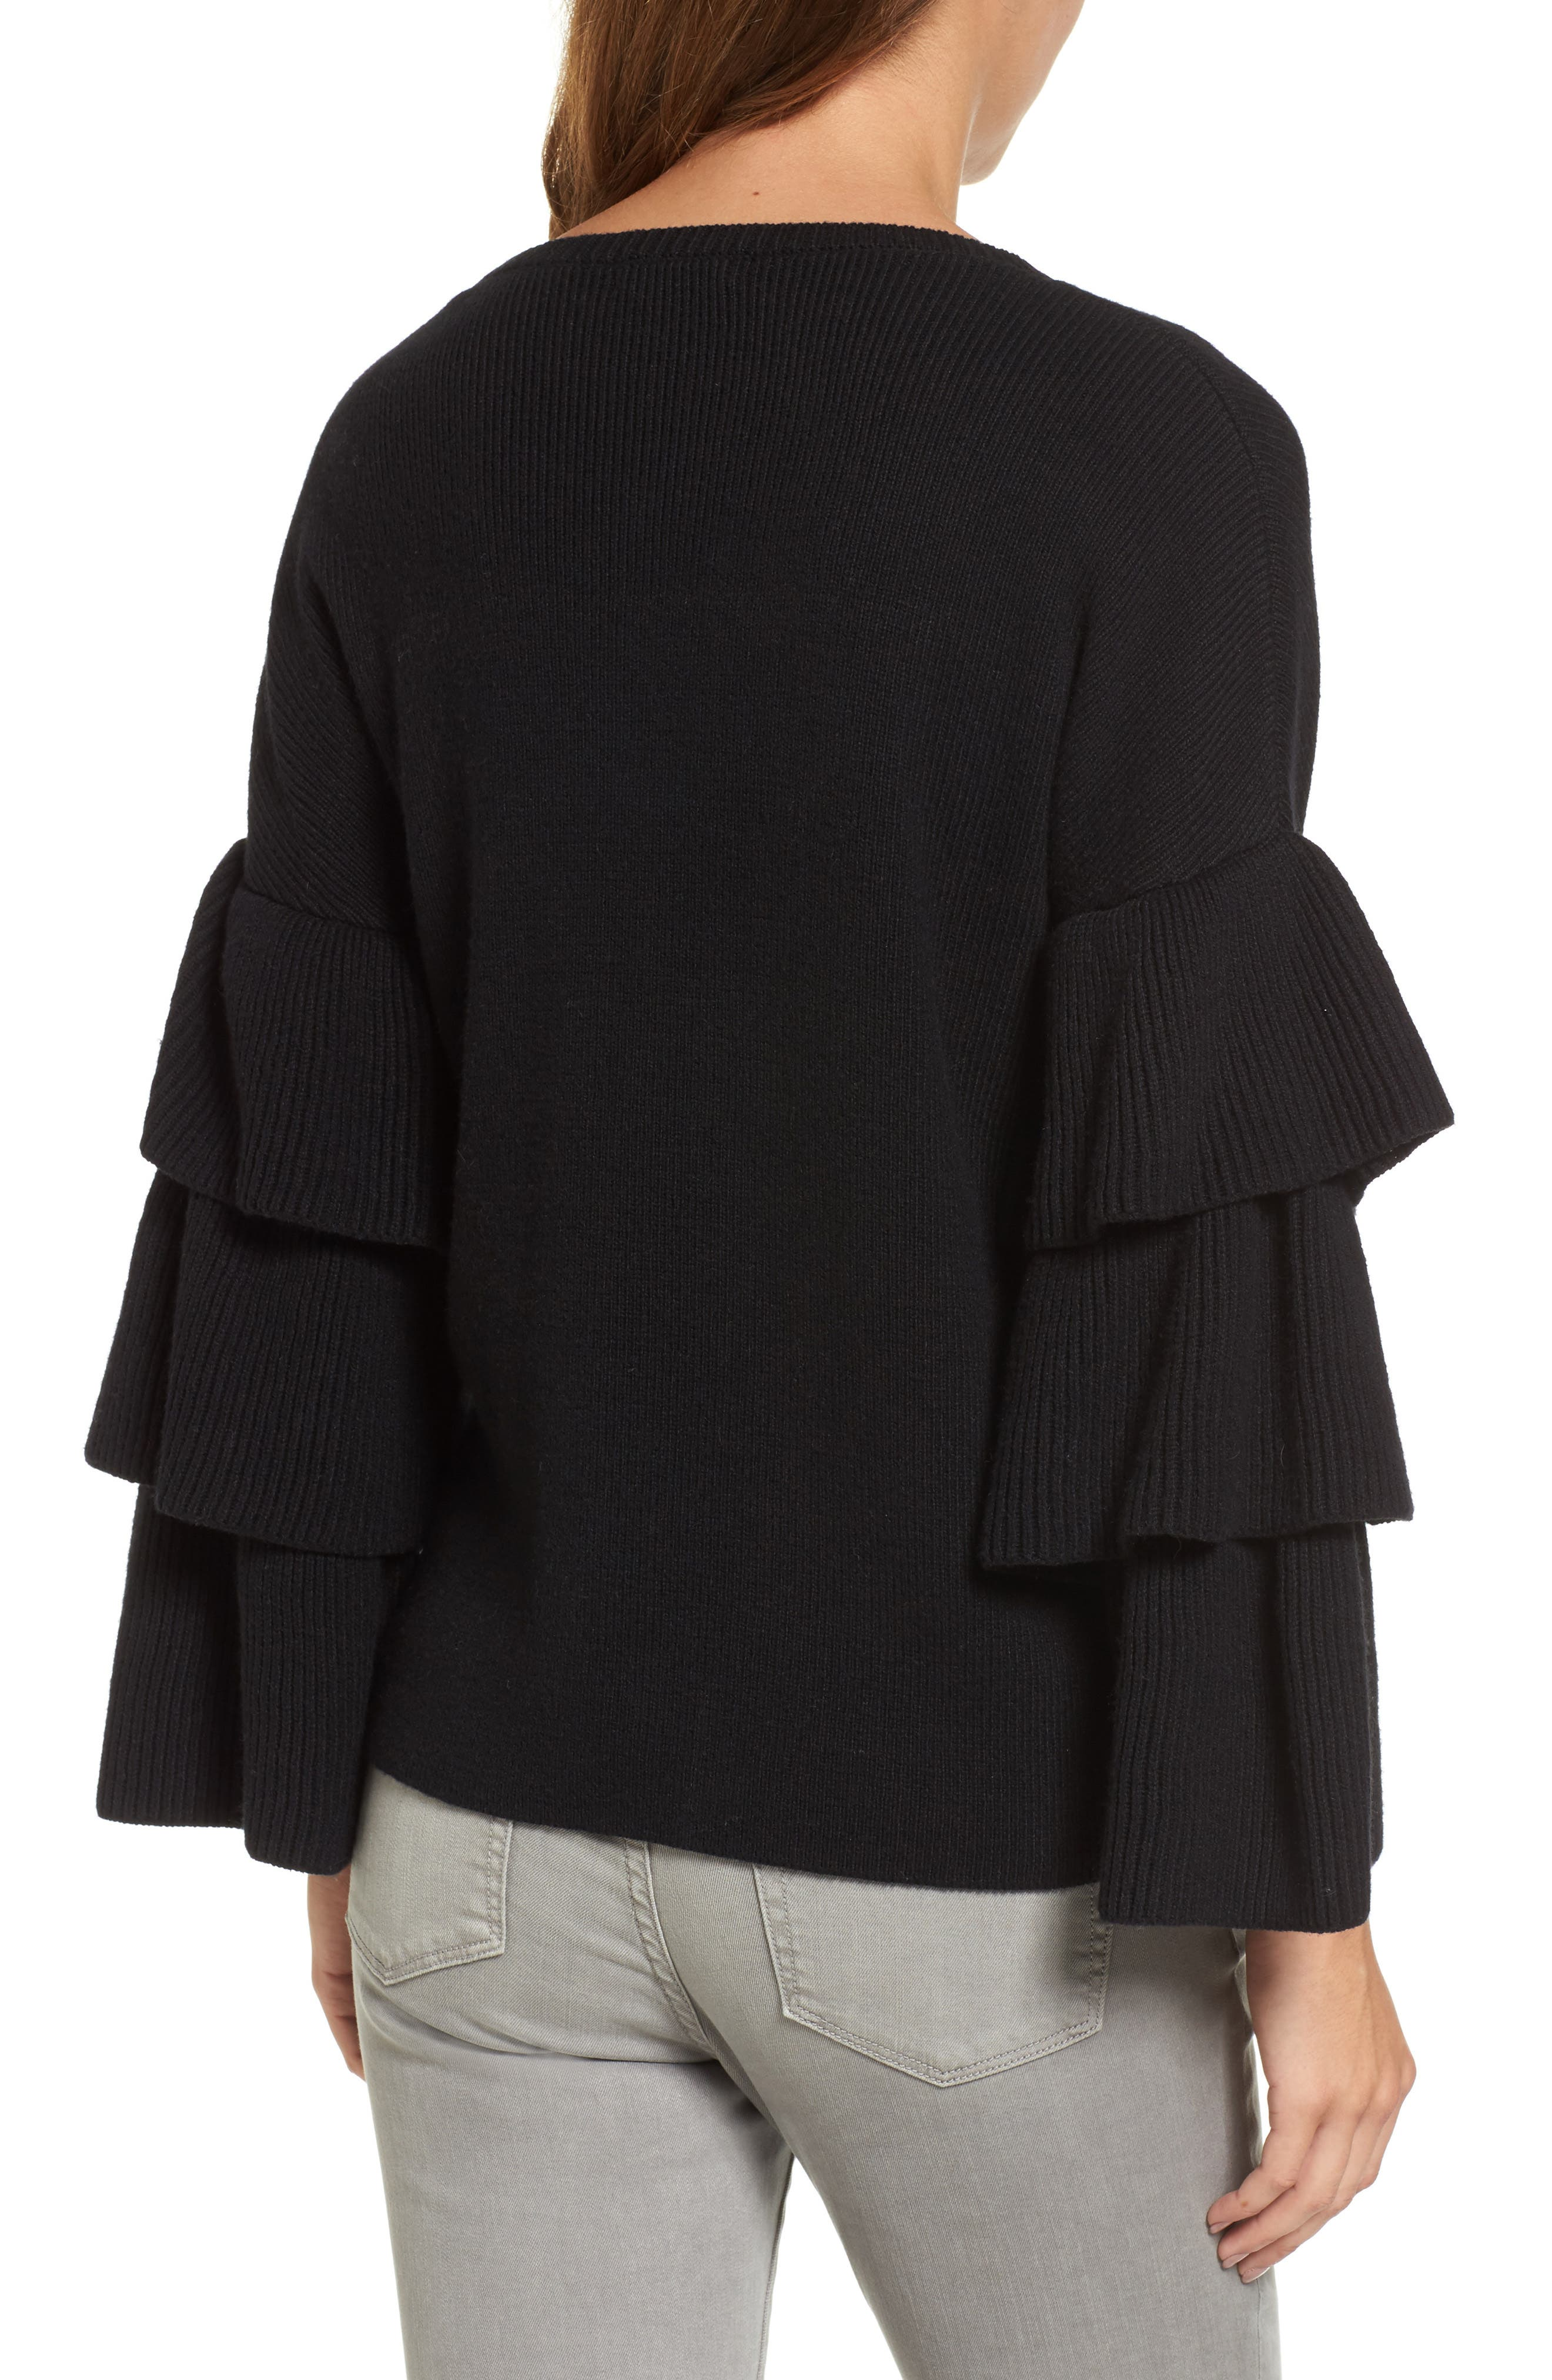 Sweaters & Sweatshirts, Cowl Necks, Cable Knits | Nordstrom ...